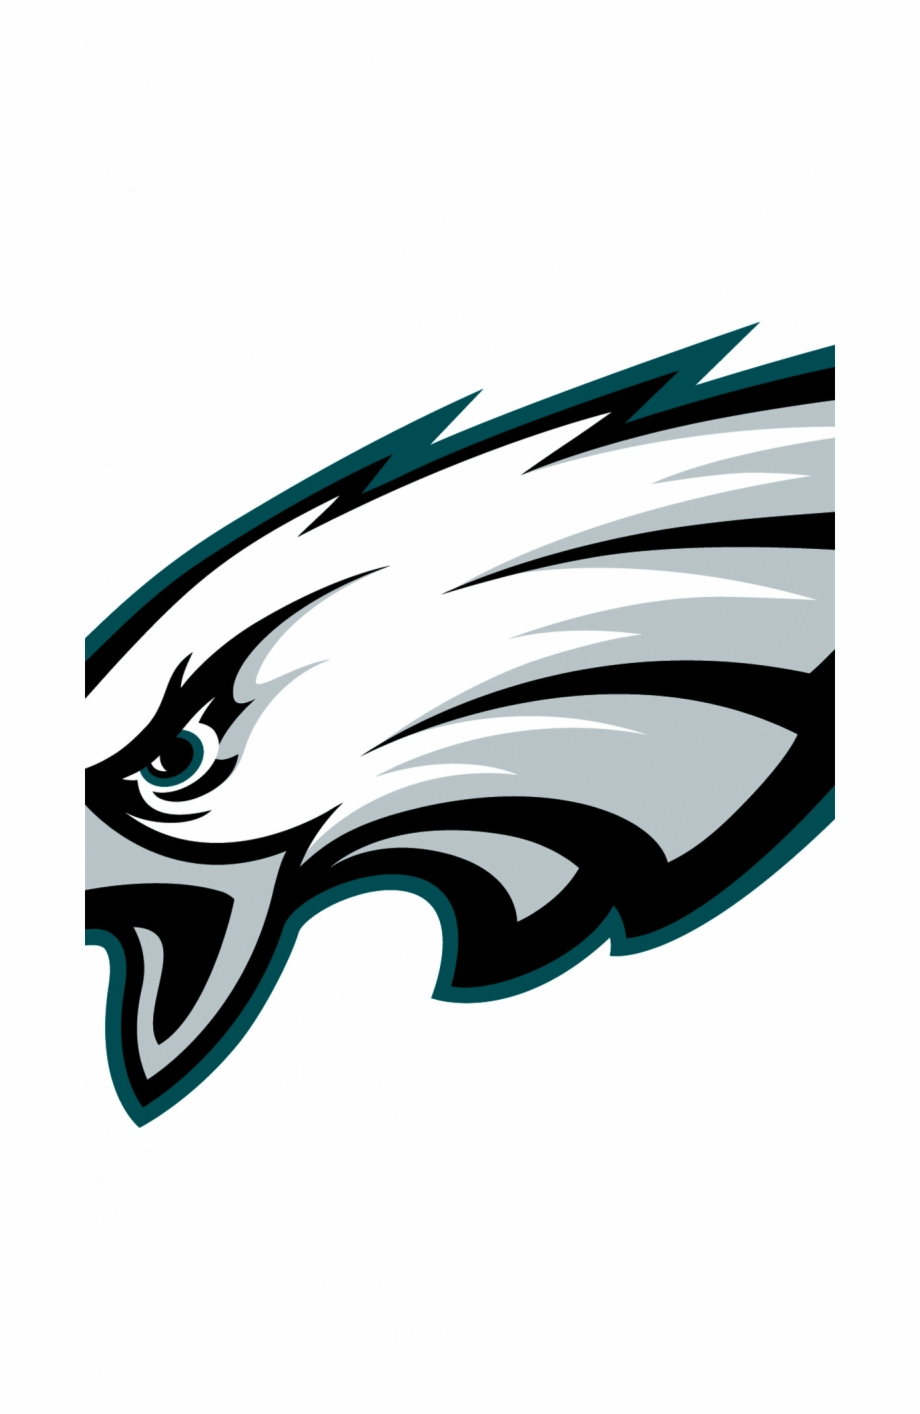 Iphone 7 Philadelphia Eagles Wallpaper   Logos Nfl PNG Images 920x1414